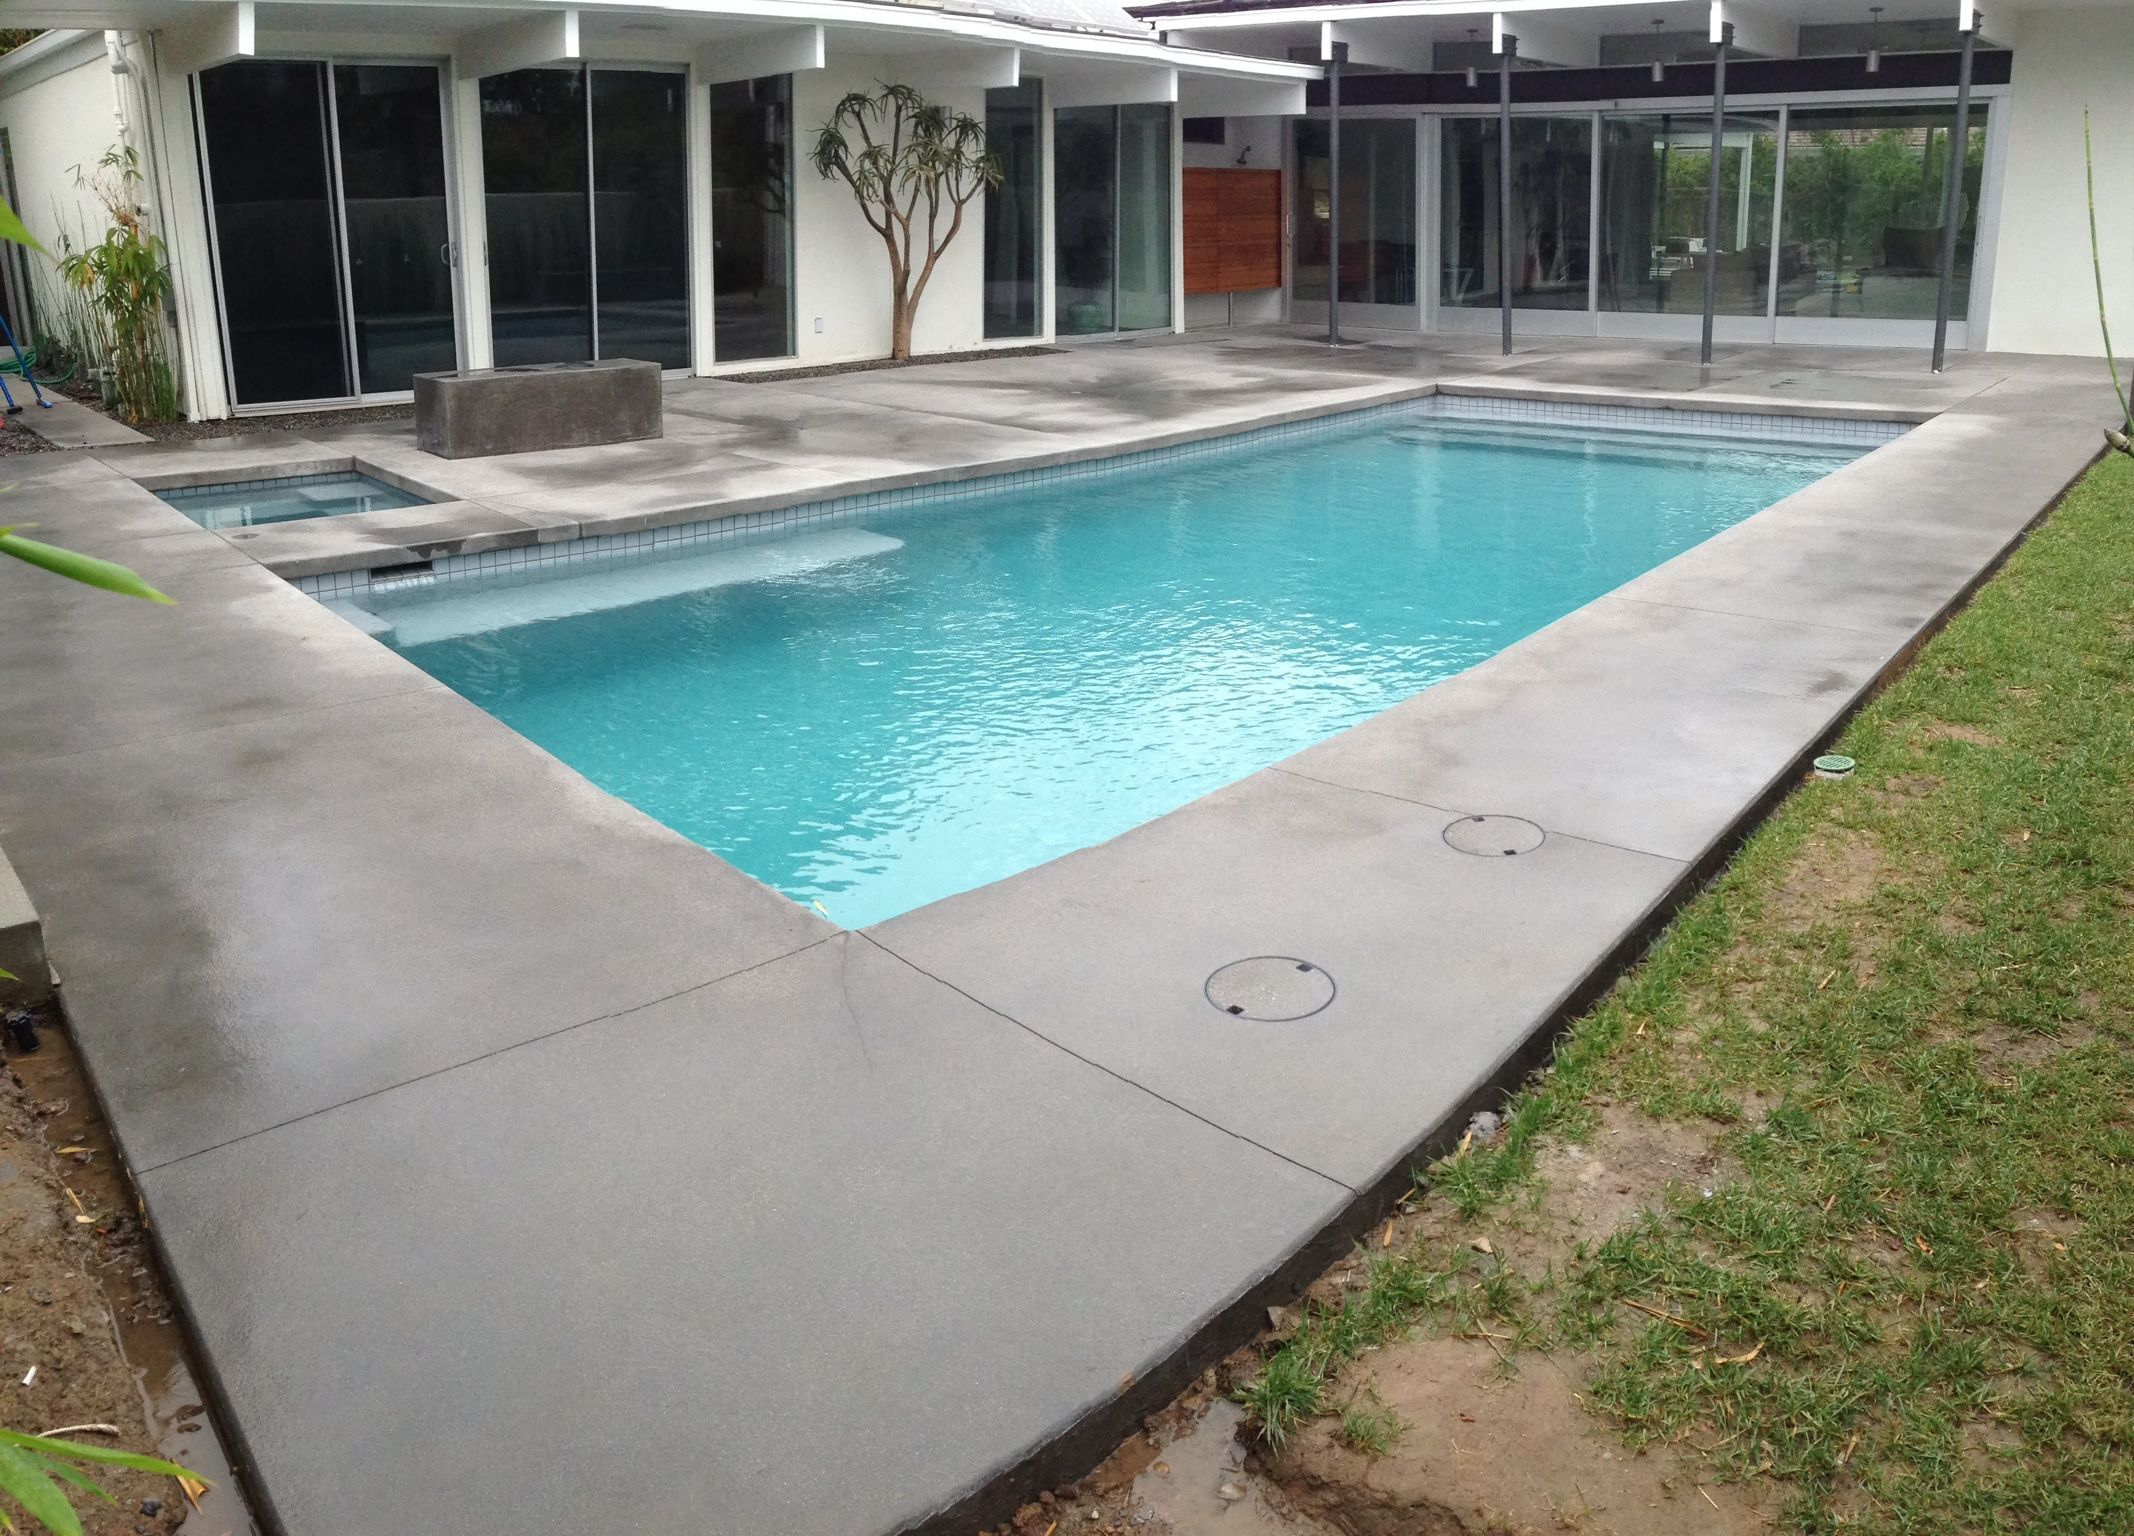 Colored Pool Deck Sand Blast Finish Concrete Decks In 2018 Pinterest Pool Decks Concrete